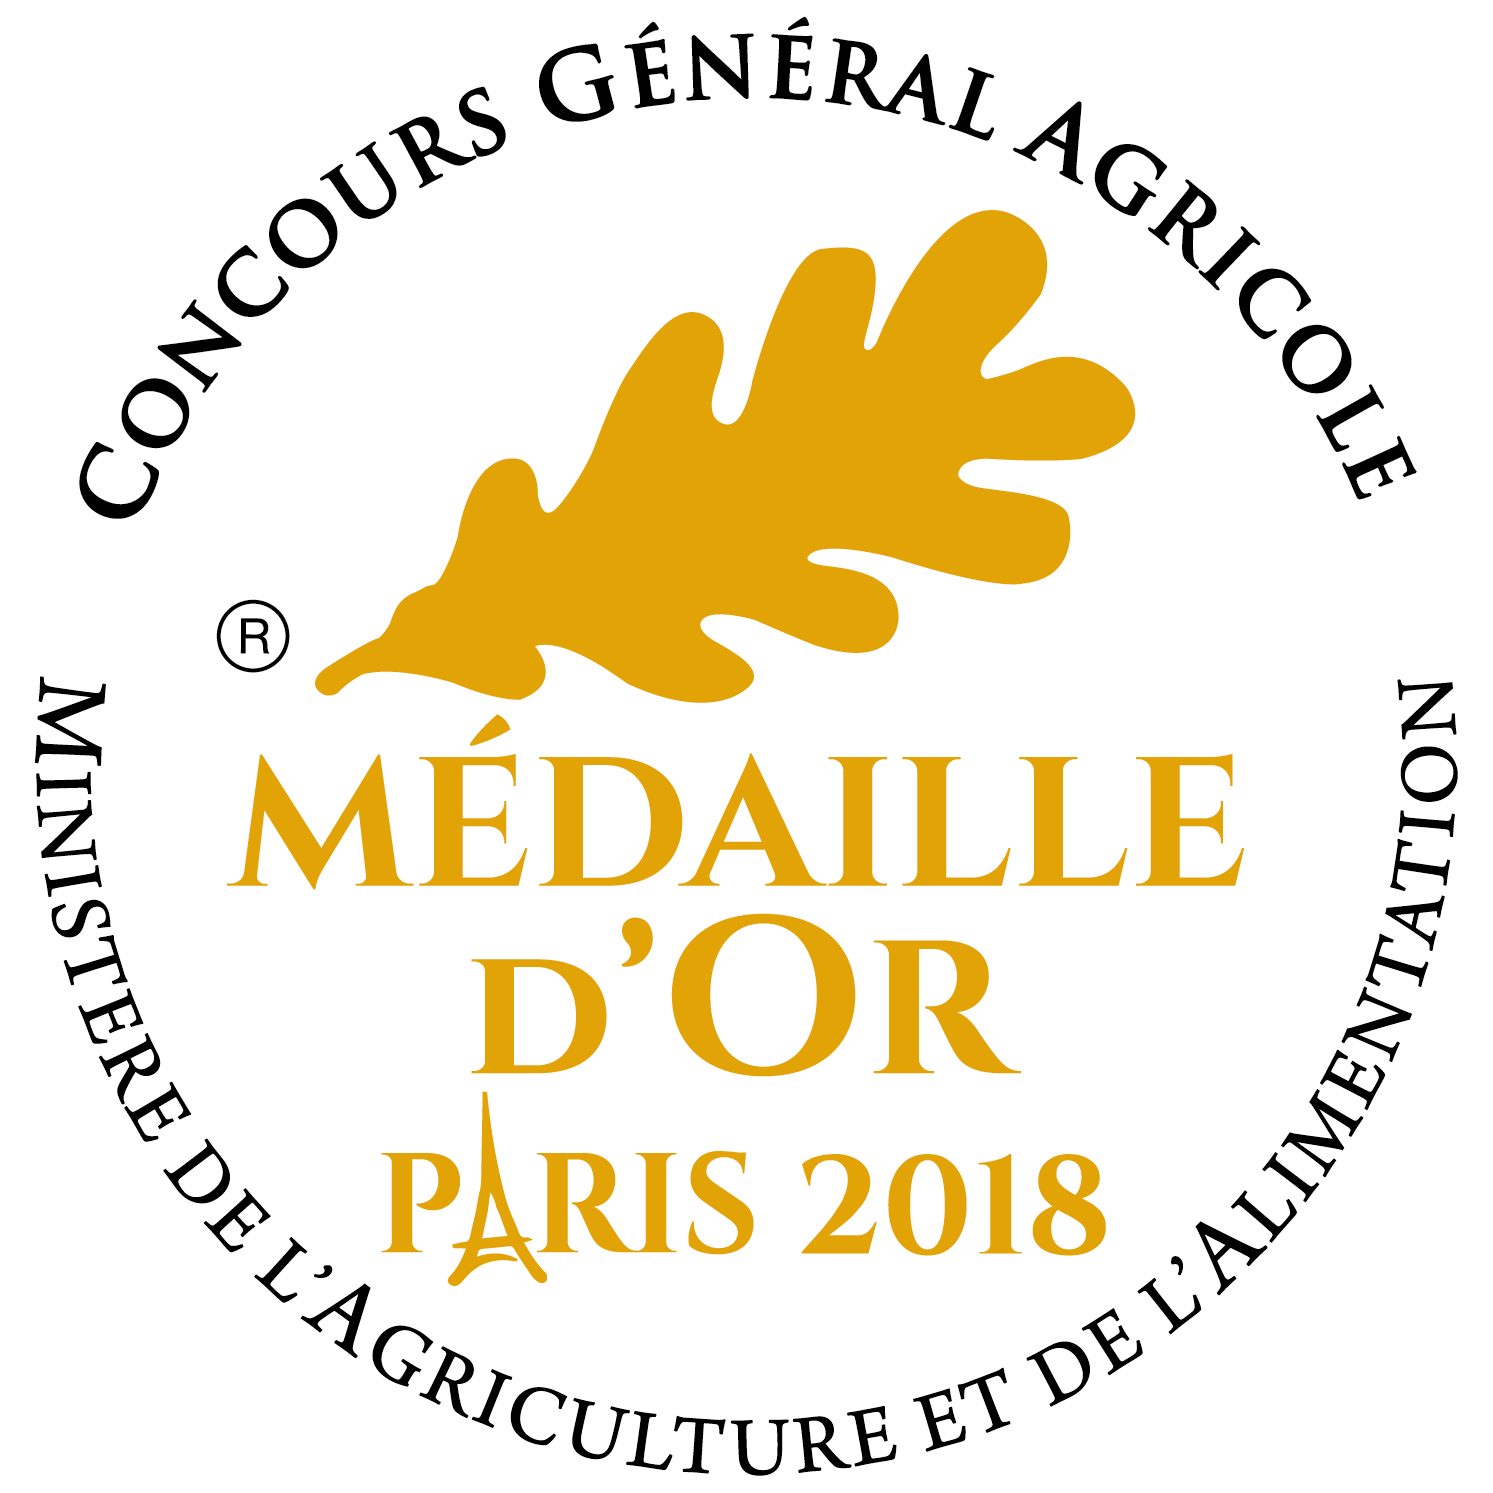 concours general agricole paris medaille or 2016